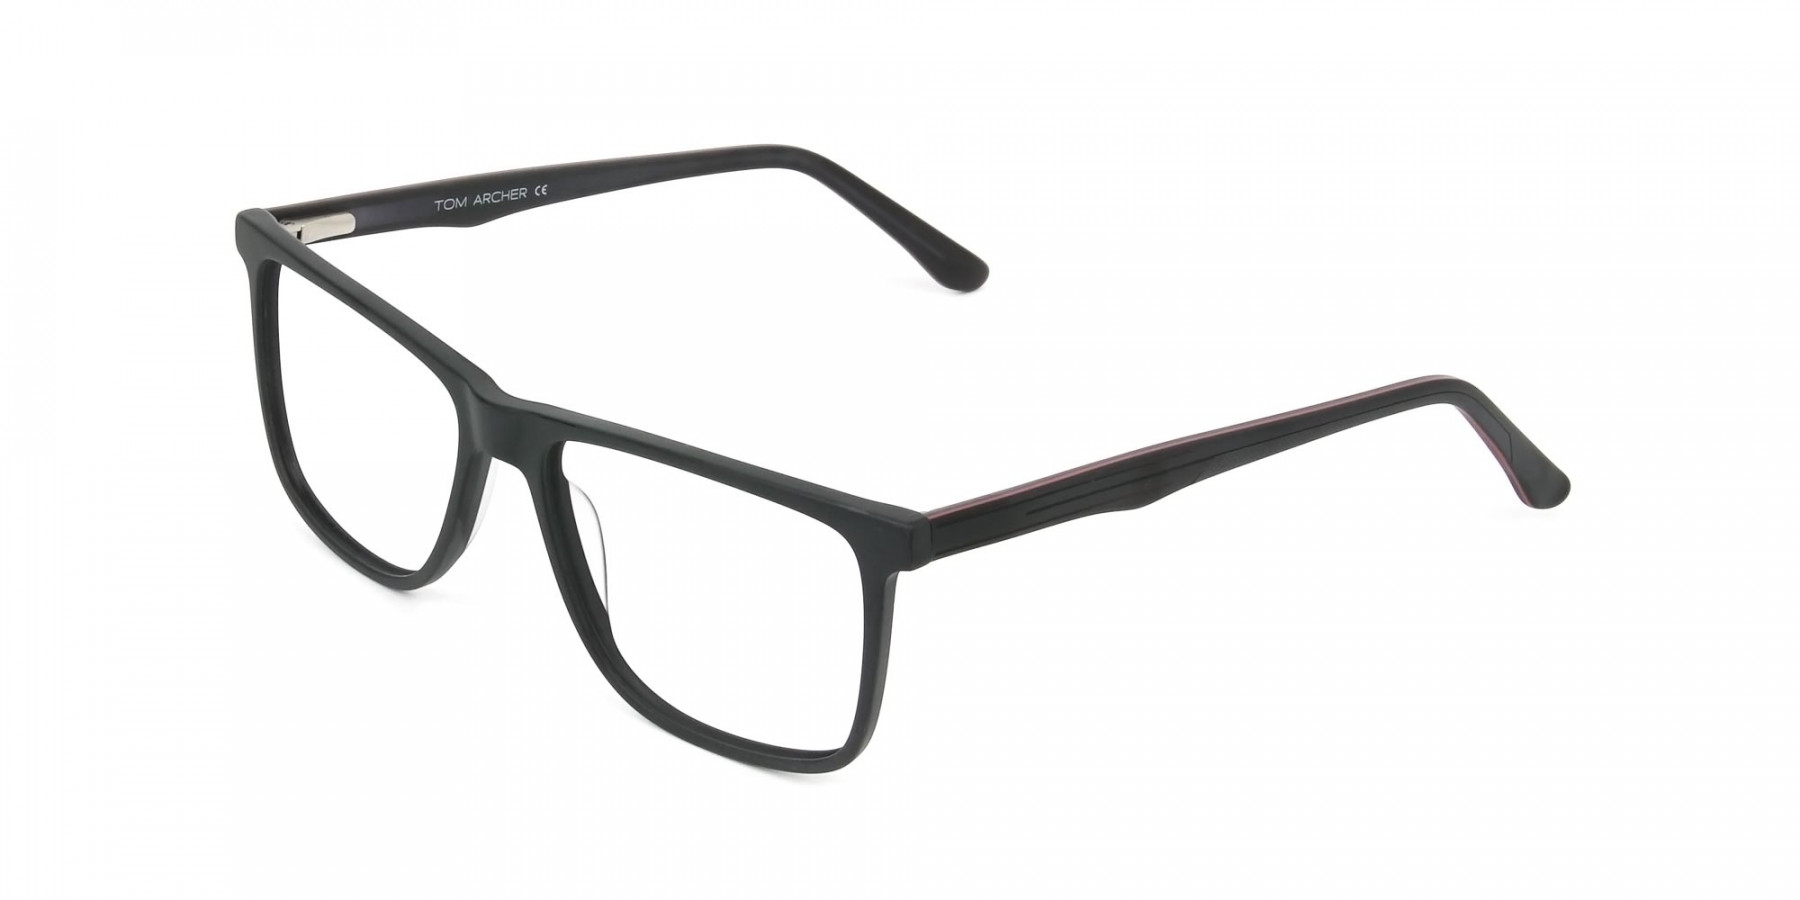 Designer Matte Black Spectacles Rectangular Men Women - 1